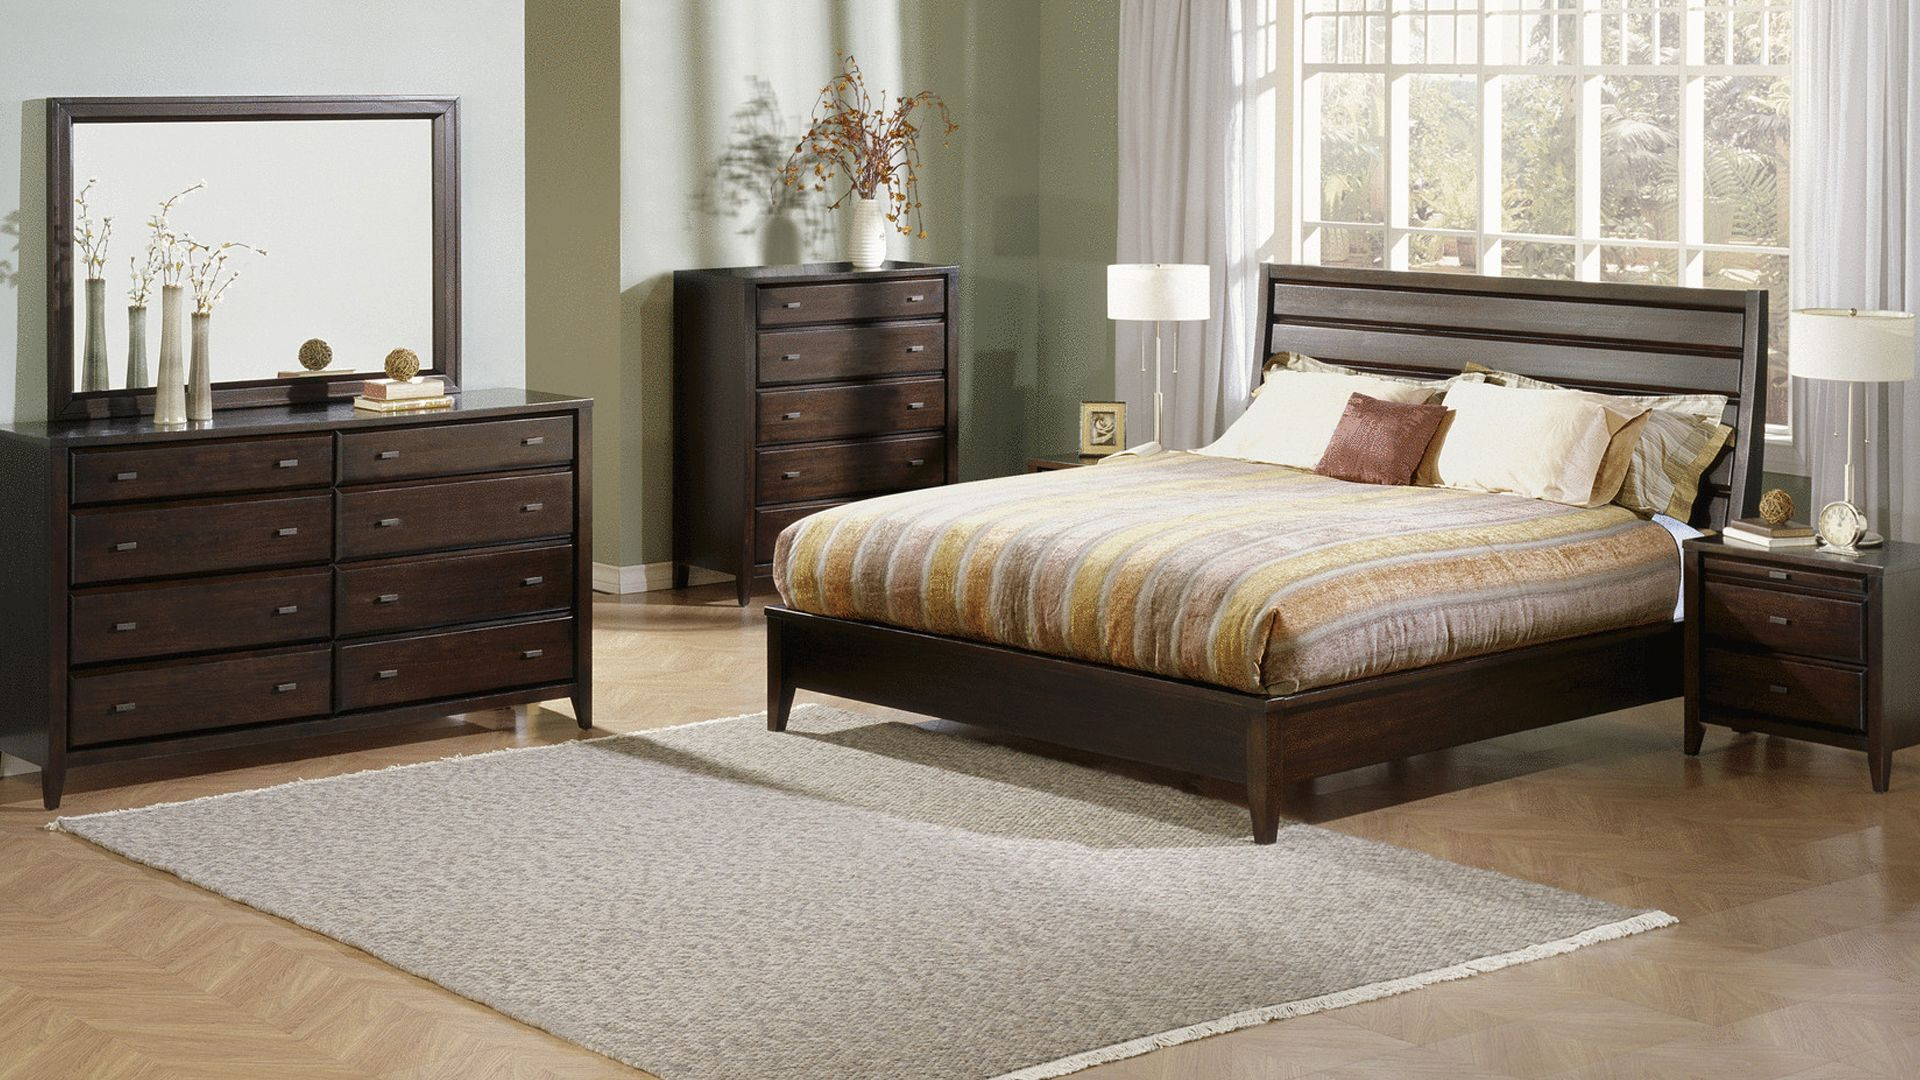 161 01 Roomshot Br Solid Wood Bedroom Furniture